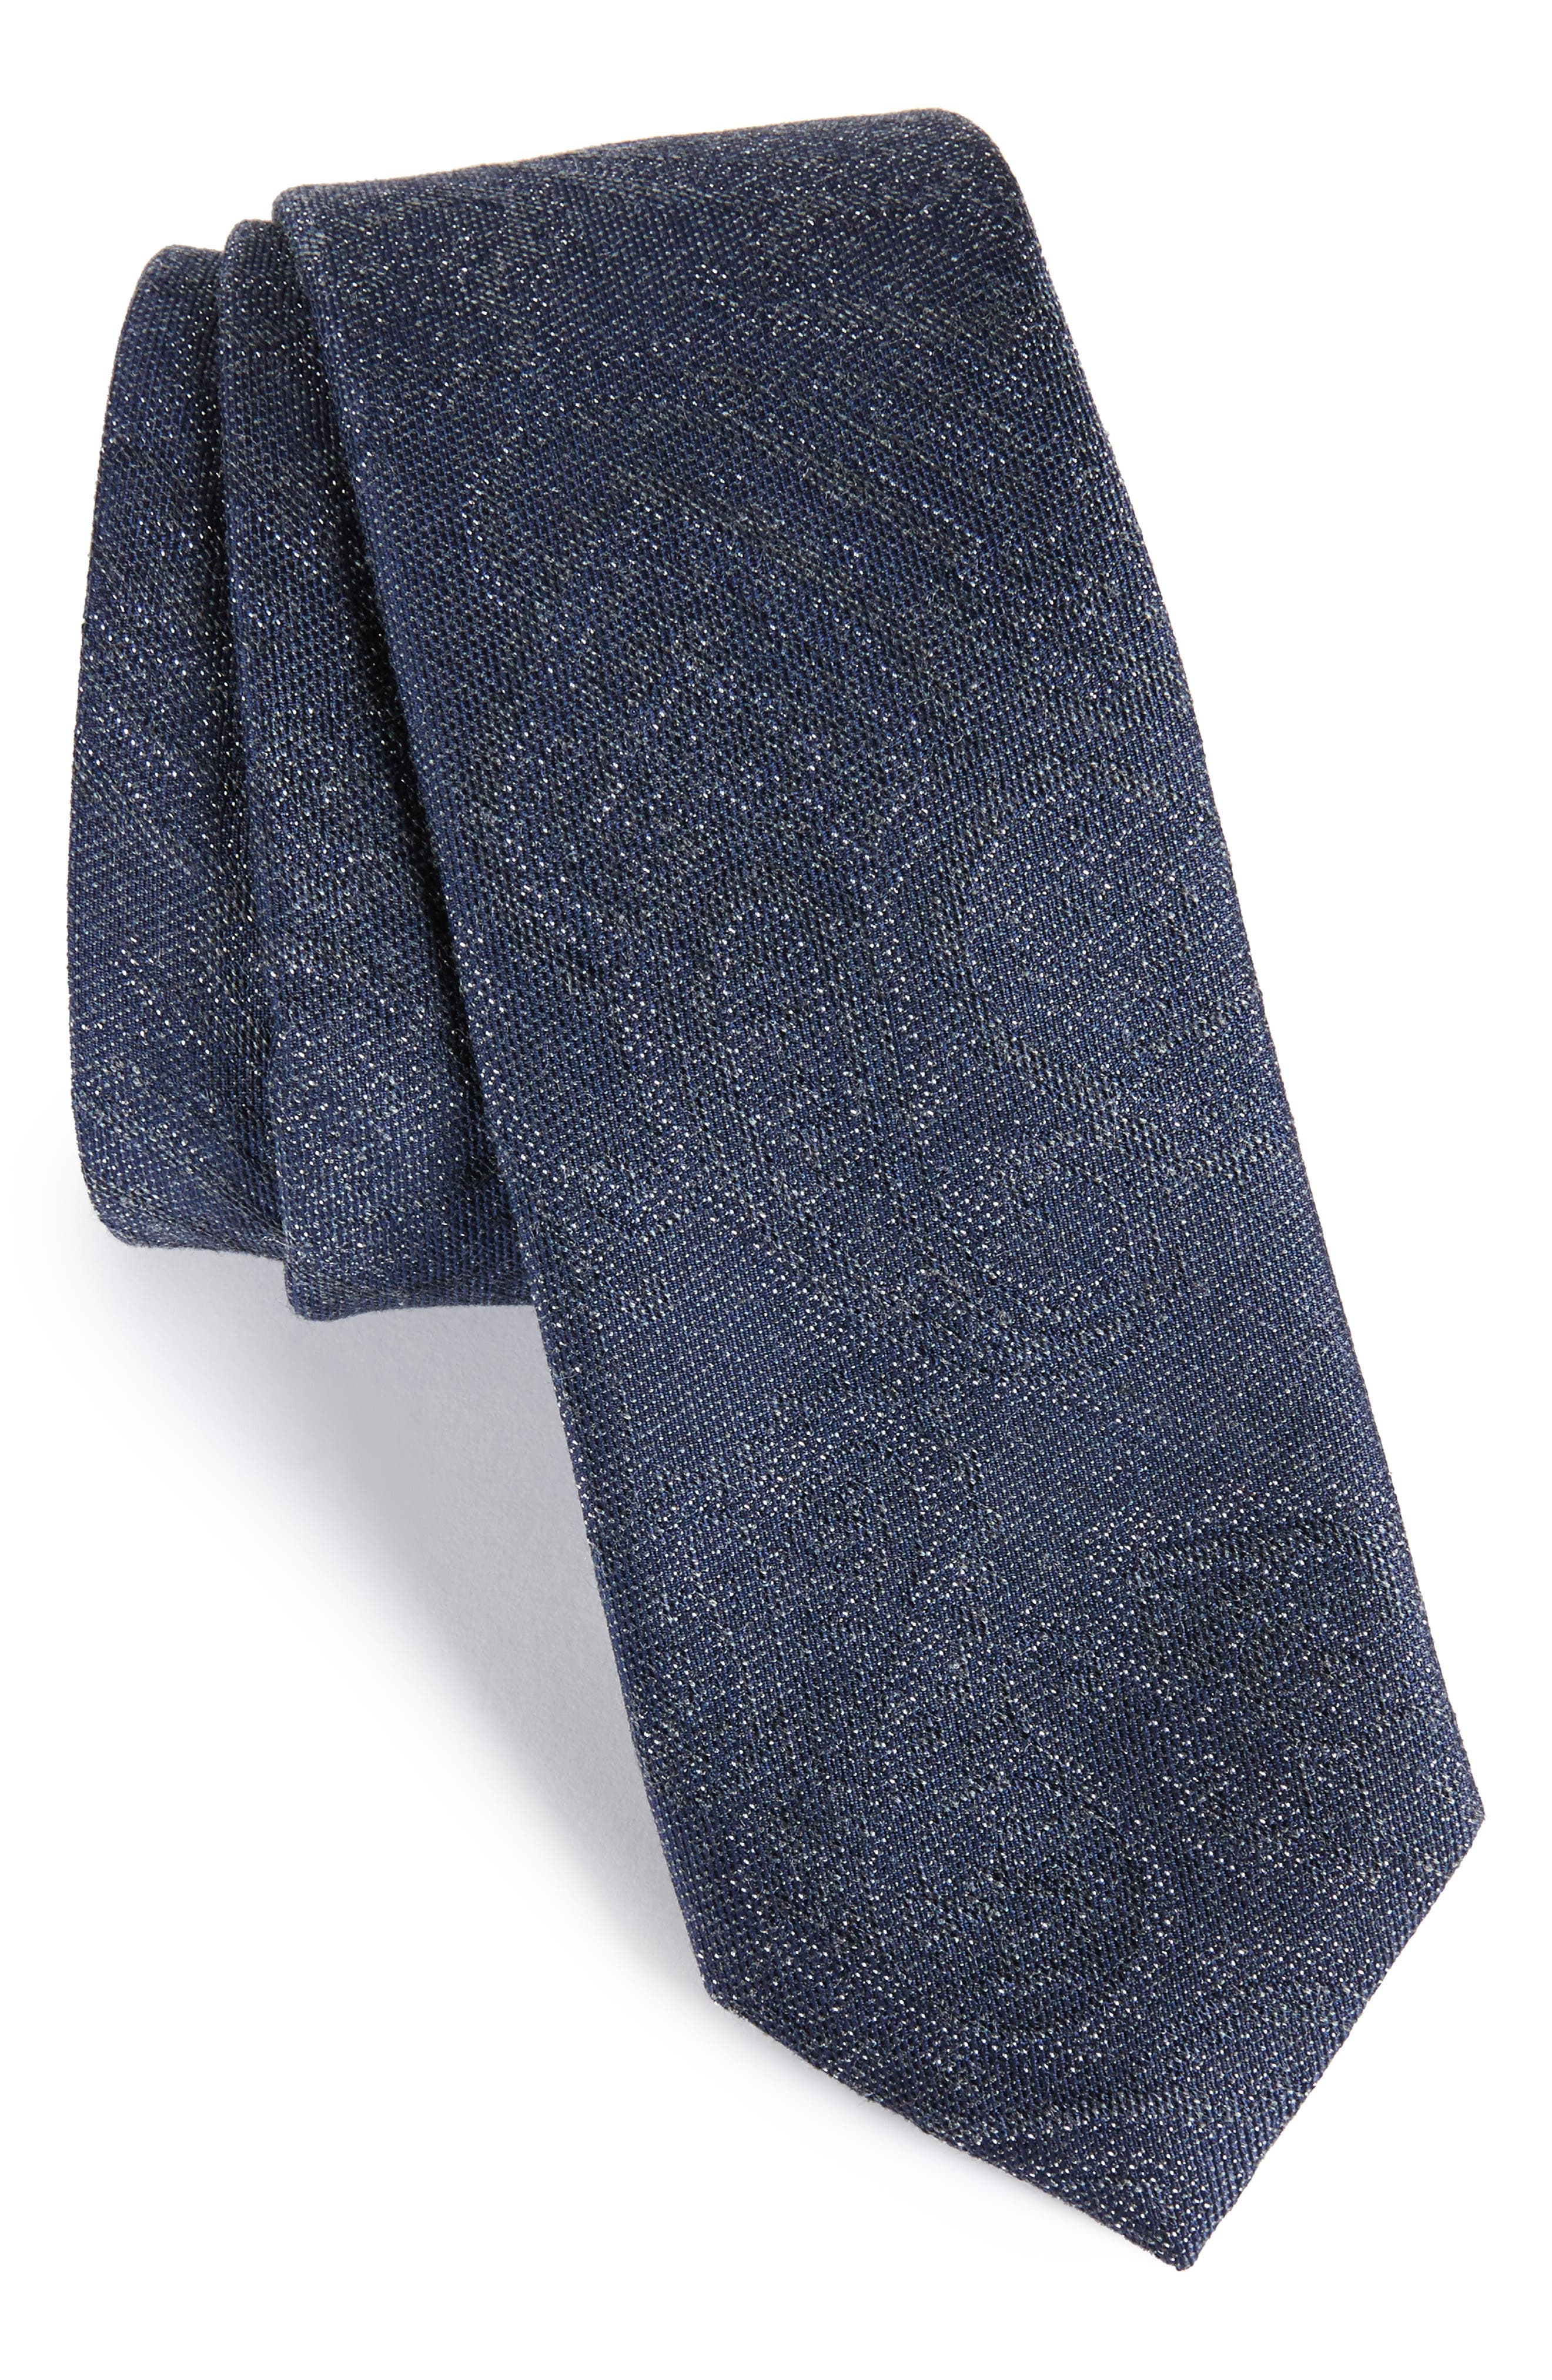 Syne Paisley Silk Blend Tie,                         Main,                         color, Navy